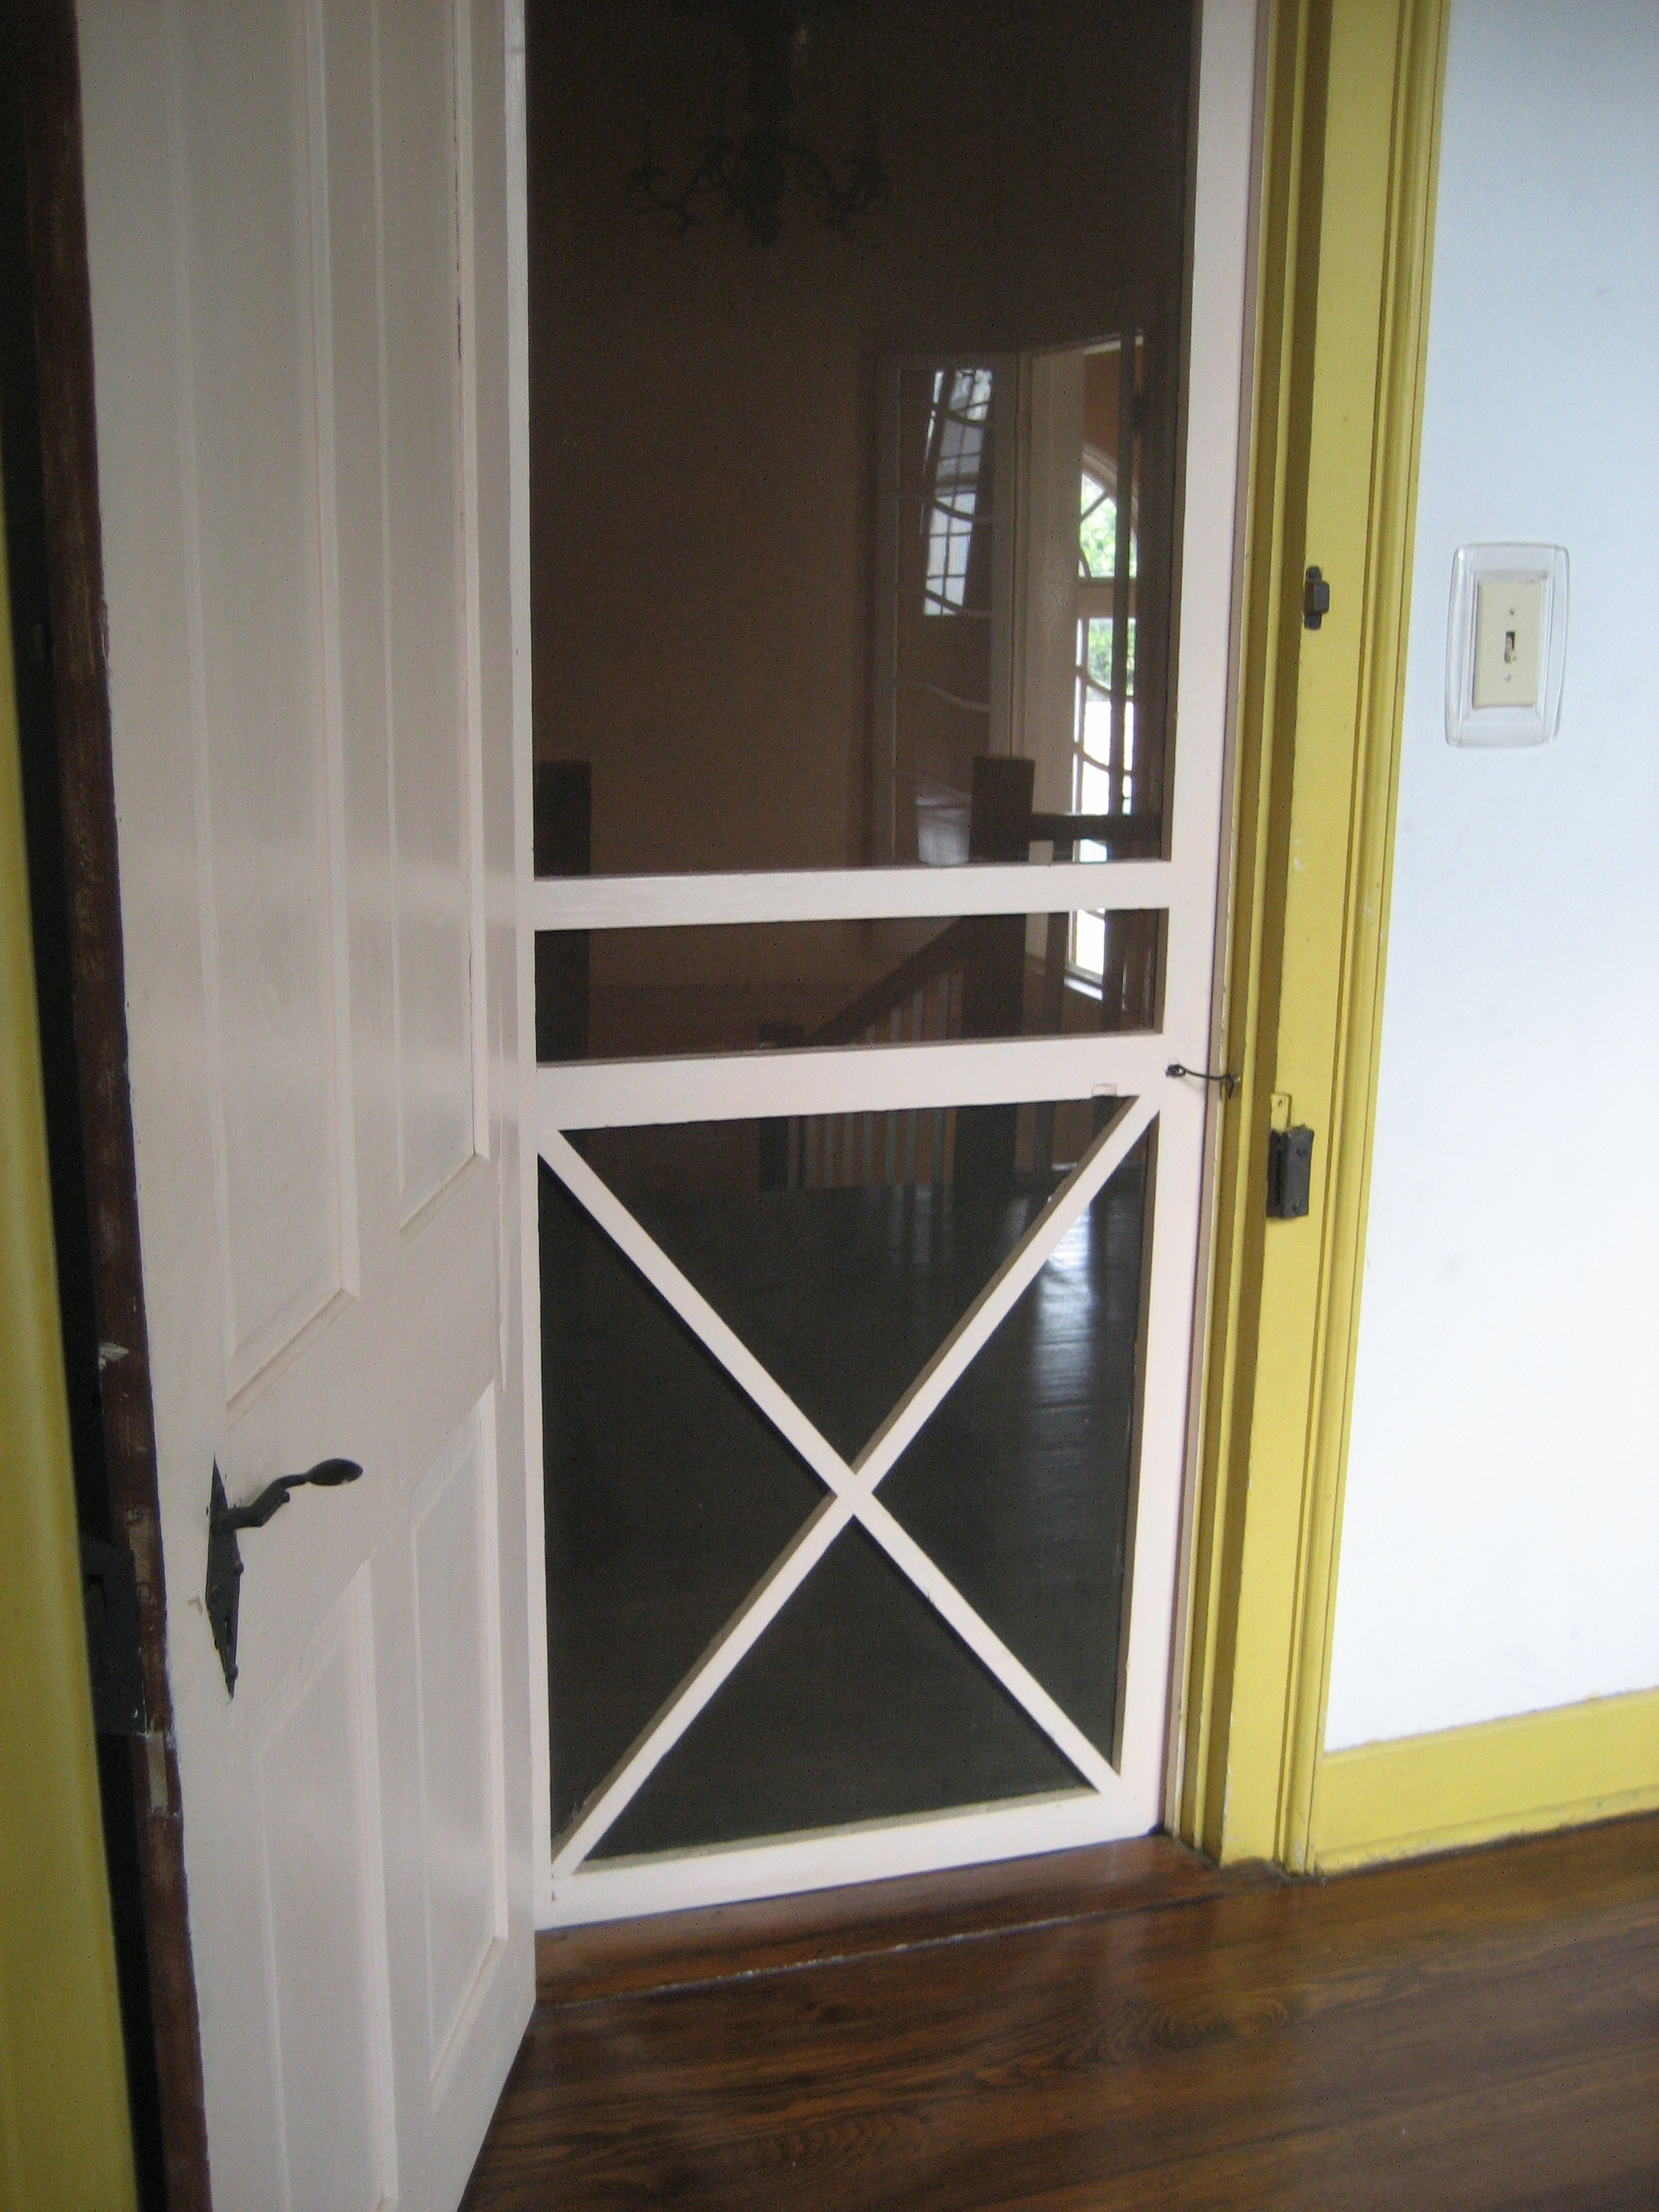 file flickr infrogmation customhouse interior screen ForInterior Screen Door